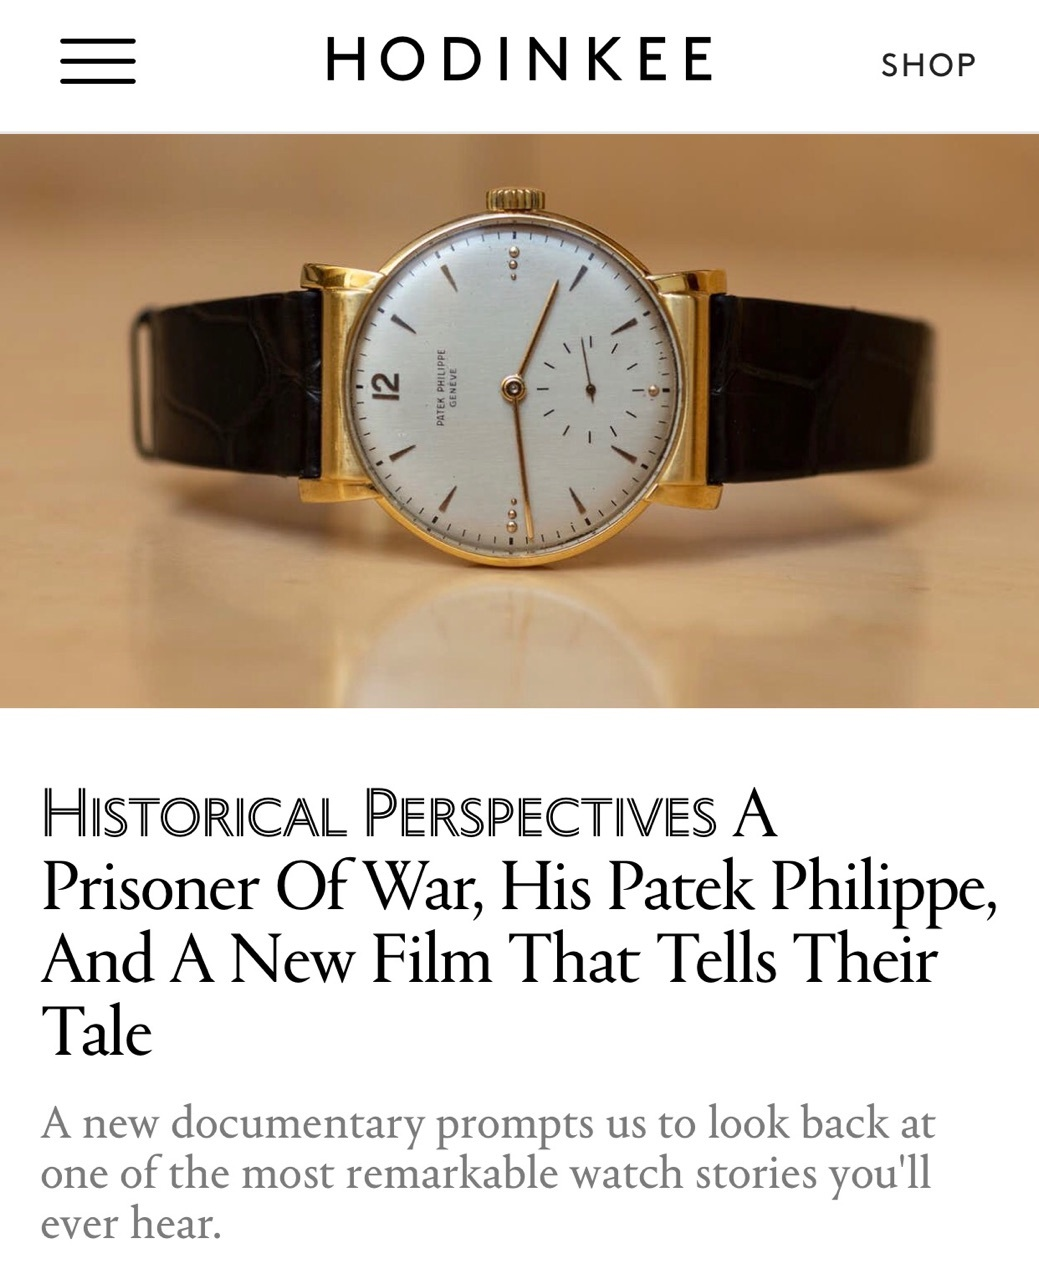 Excerpt by Jason Heaton - Jason describes a story within the film that lasts 5 1/2 minutes within the 105 minutes of the full documentary. The watch story is highly impactful offering tremendous hope and joy to my Uncle and his fellow PoWs in Stalag Luft III.